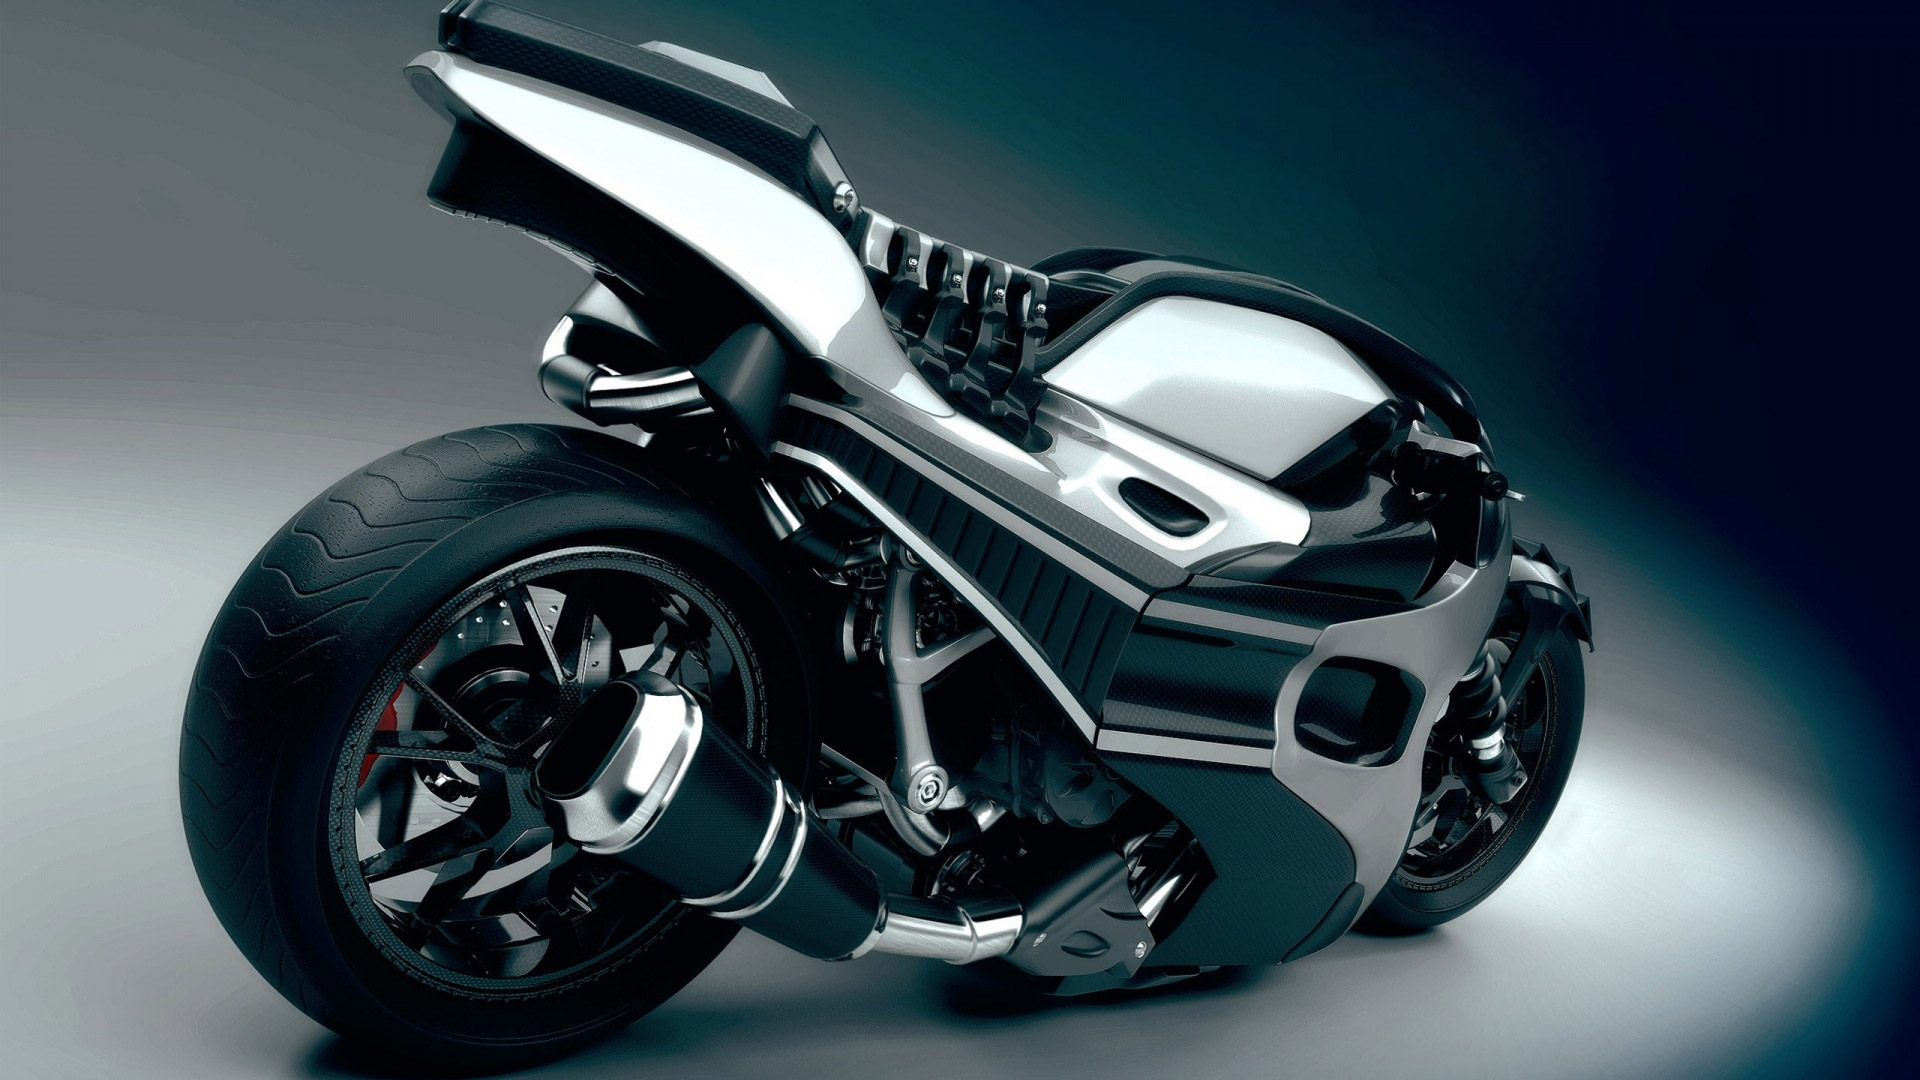 Concept Motorcycles For Wallpapers wallpapers at HDBikeWallpapers.com ...